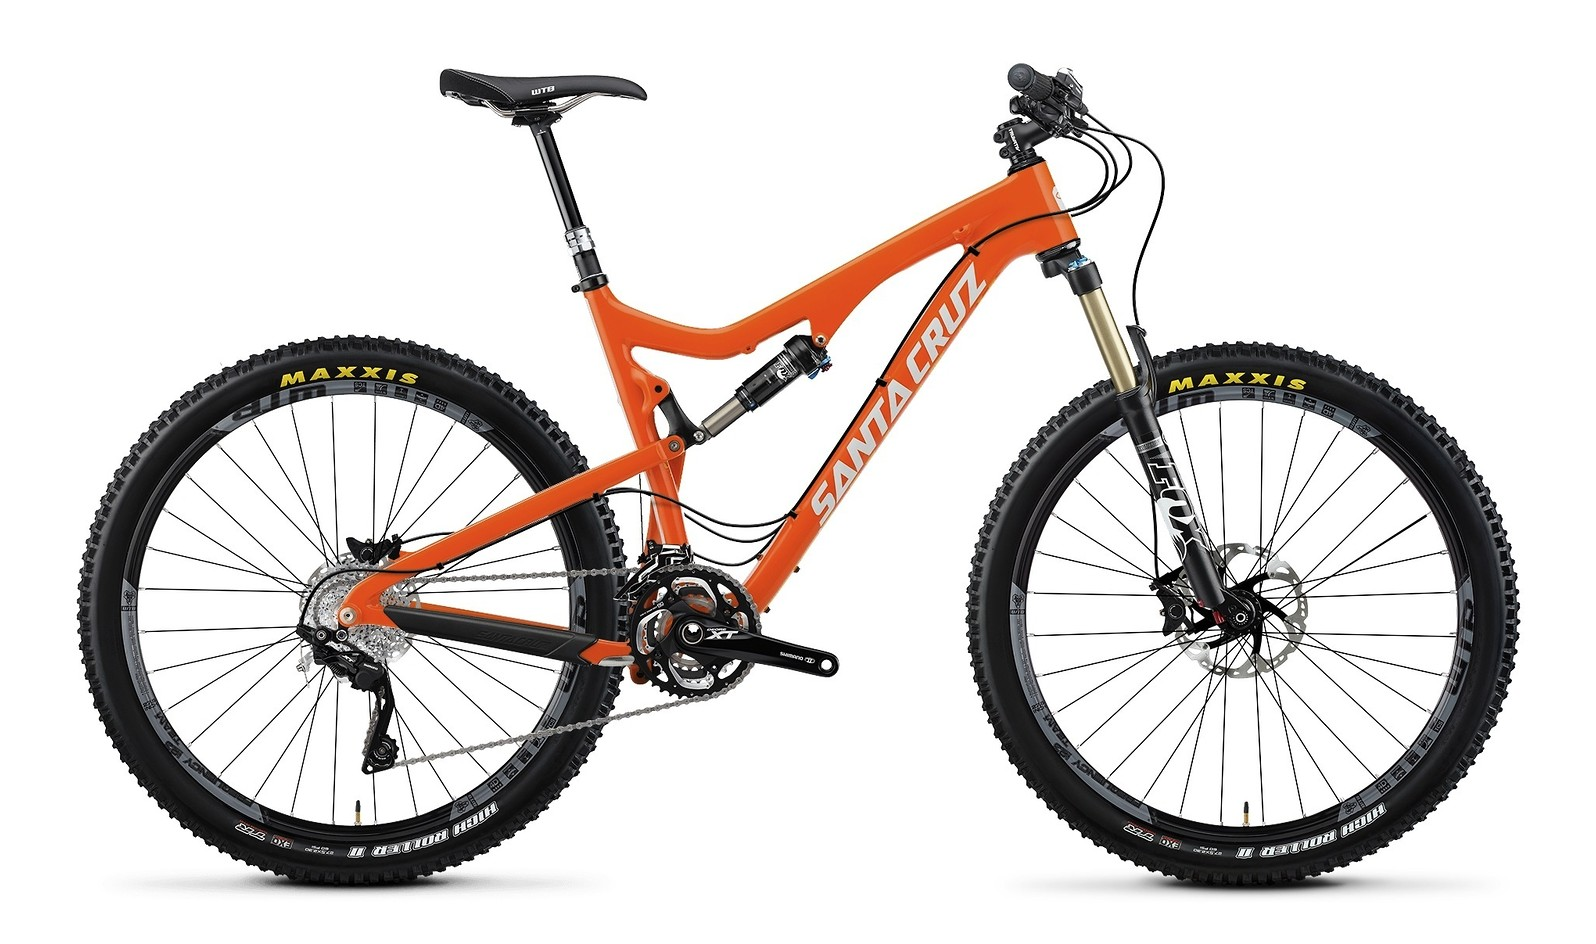 2014 Santa Cruz 5010 Carbon SPX AM 27.5 Bike 2014 Santa Cruz Solo Carbon SPX AM 27.5 Bike - orange